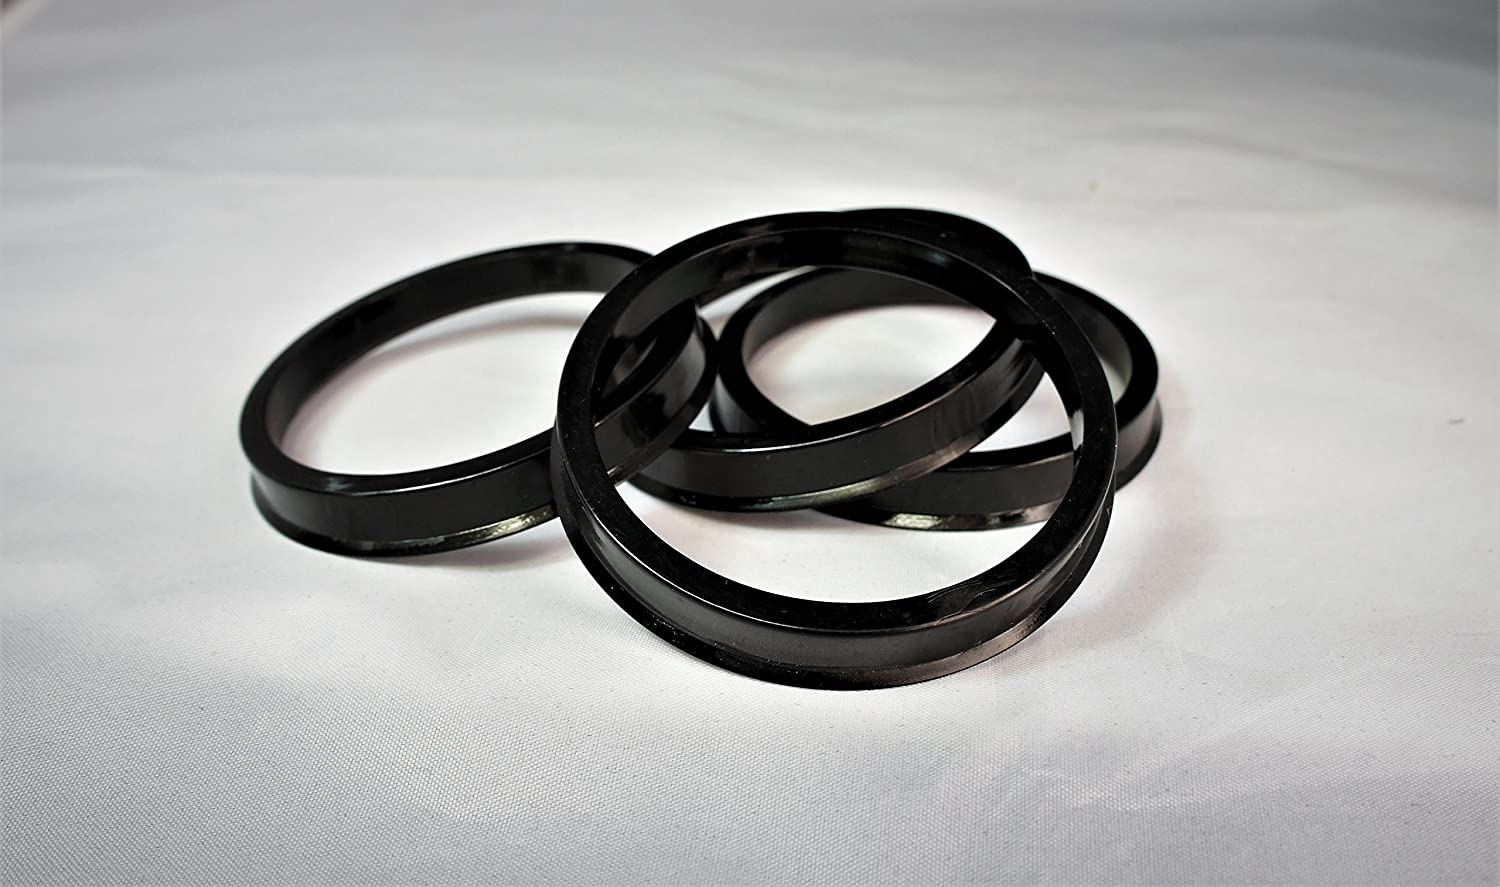 Customadeonly 4 Pieces - Hub Centric Rings 73.1mm (Wheel) to 57.1mm (Hub) | Hubcentric Center Ring